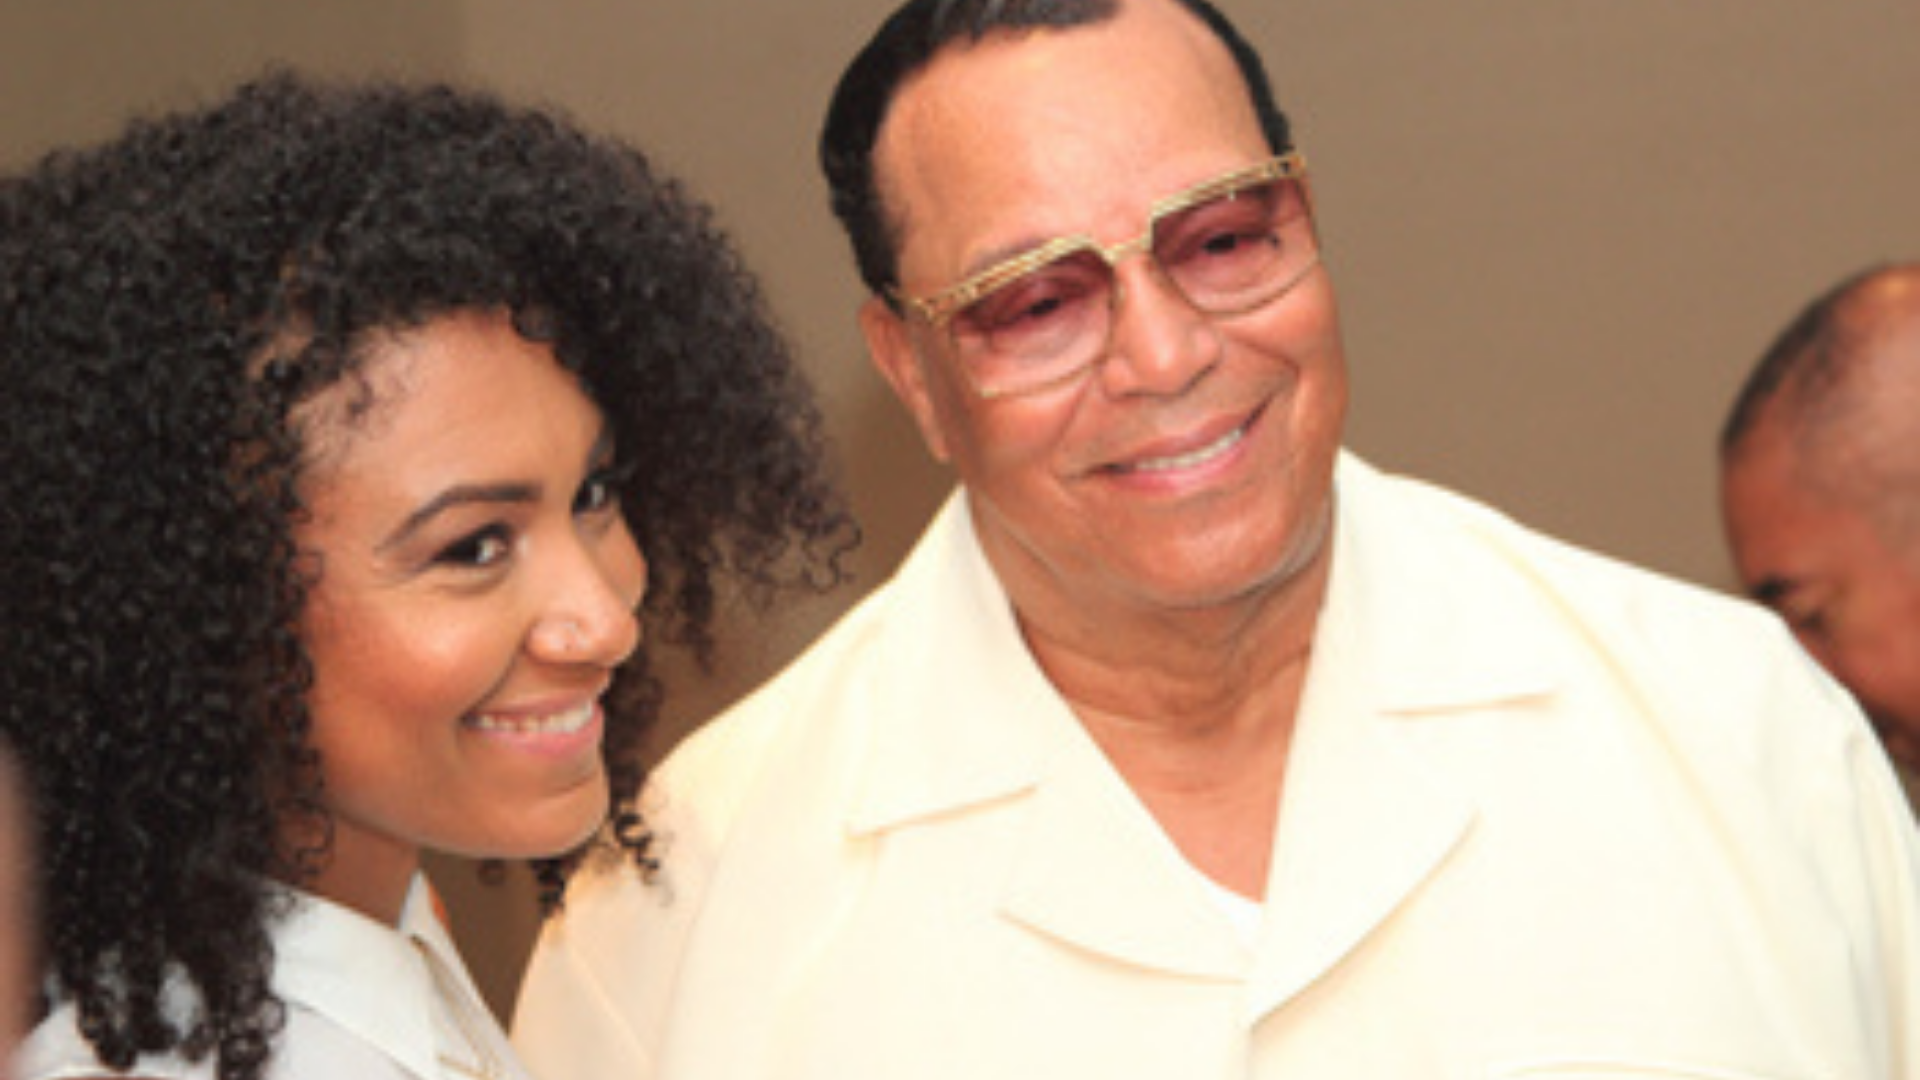 We Don't Have Time To Play With the Principle of Justice – Felicia Monet interviews Minister Farrakhan